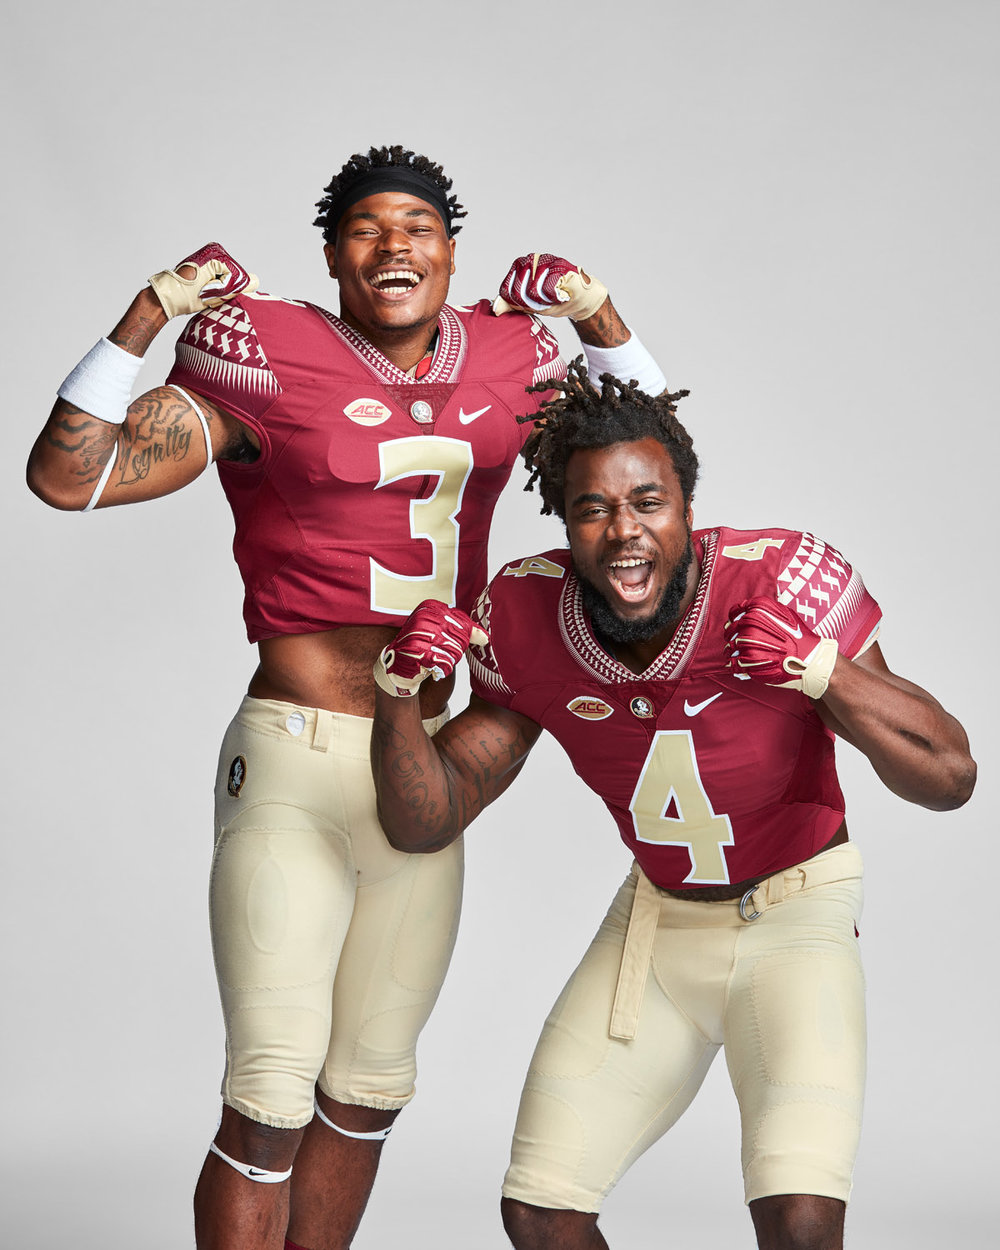 ESPN_FSU_3JAMES_4COOK_0276.jpg